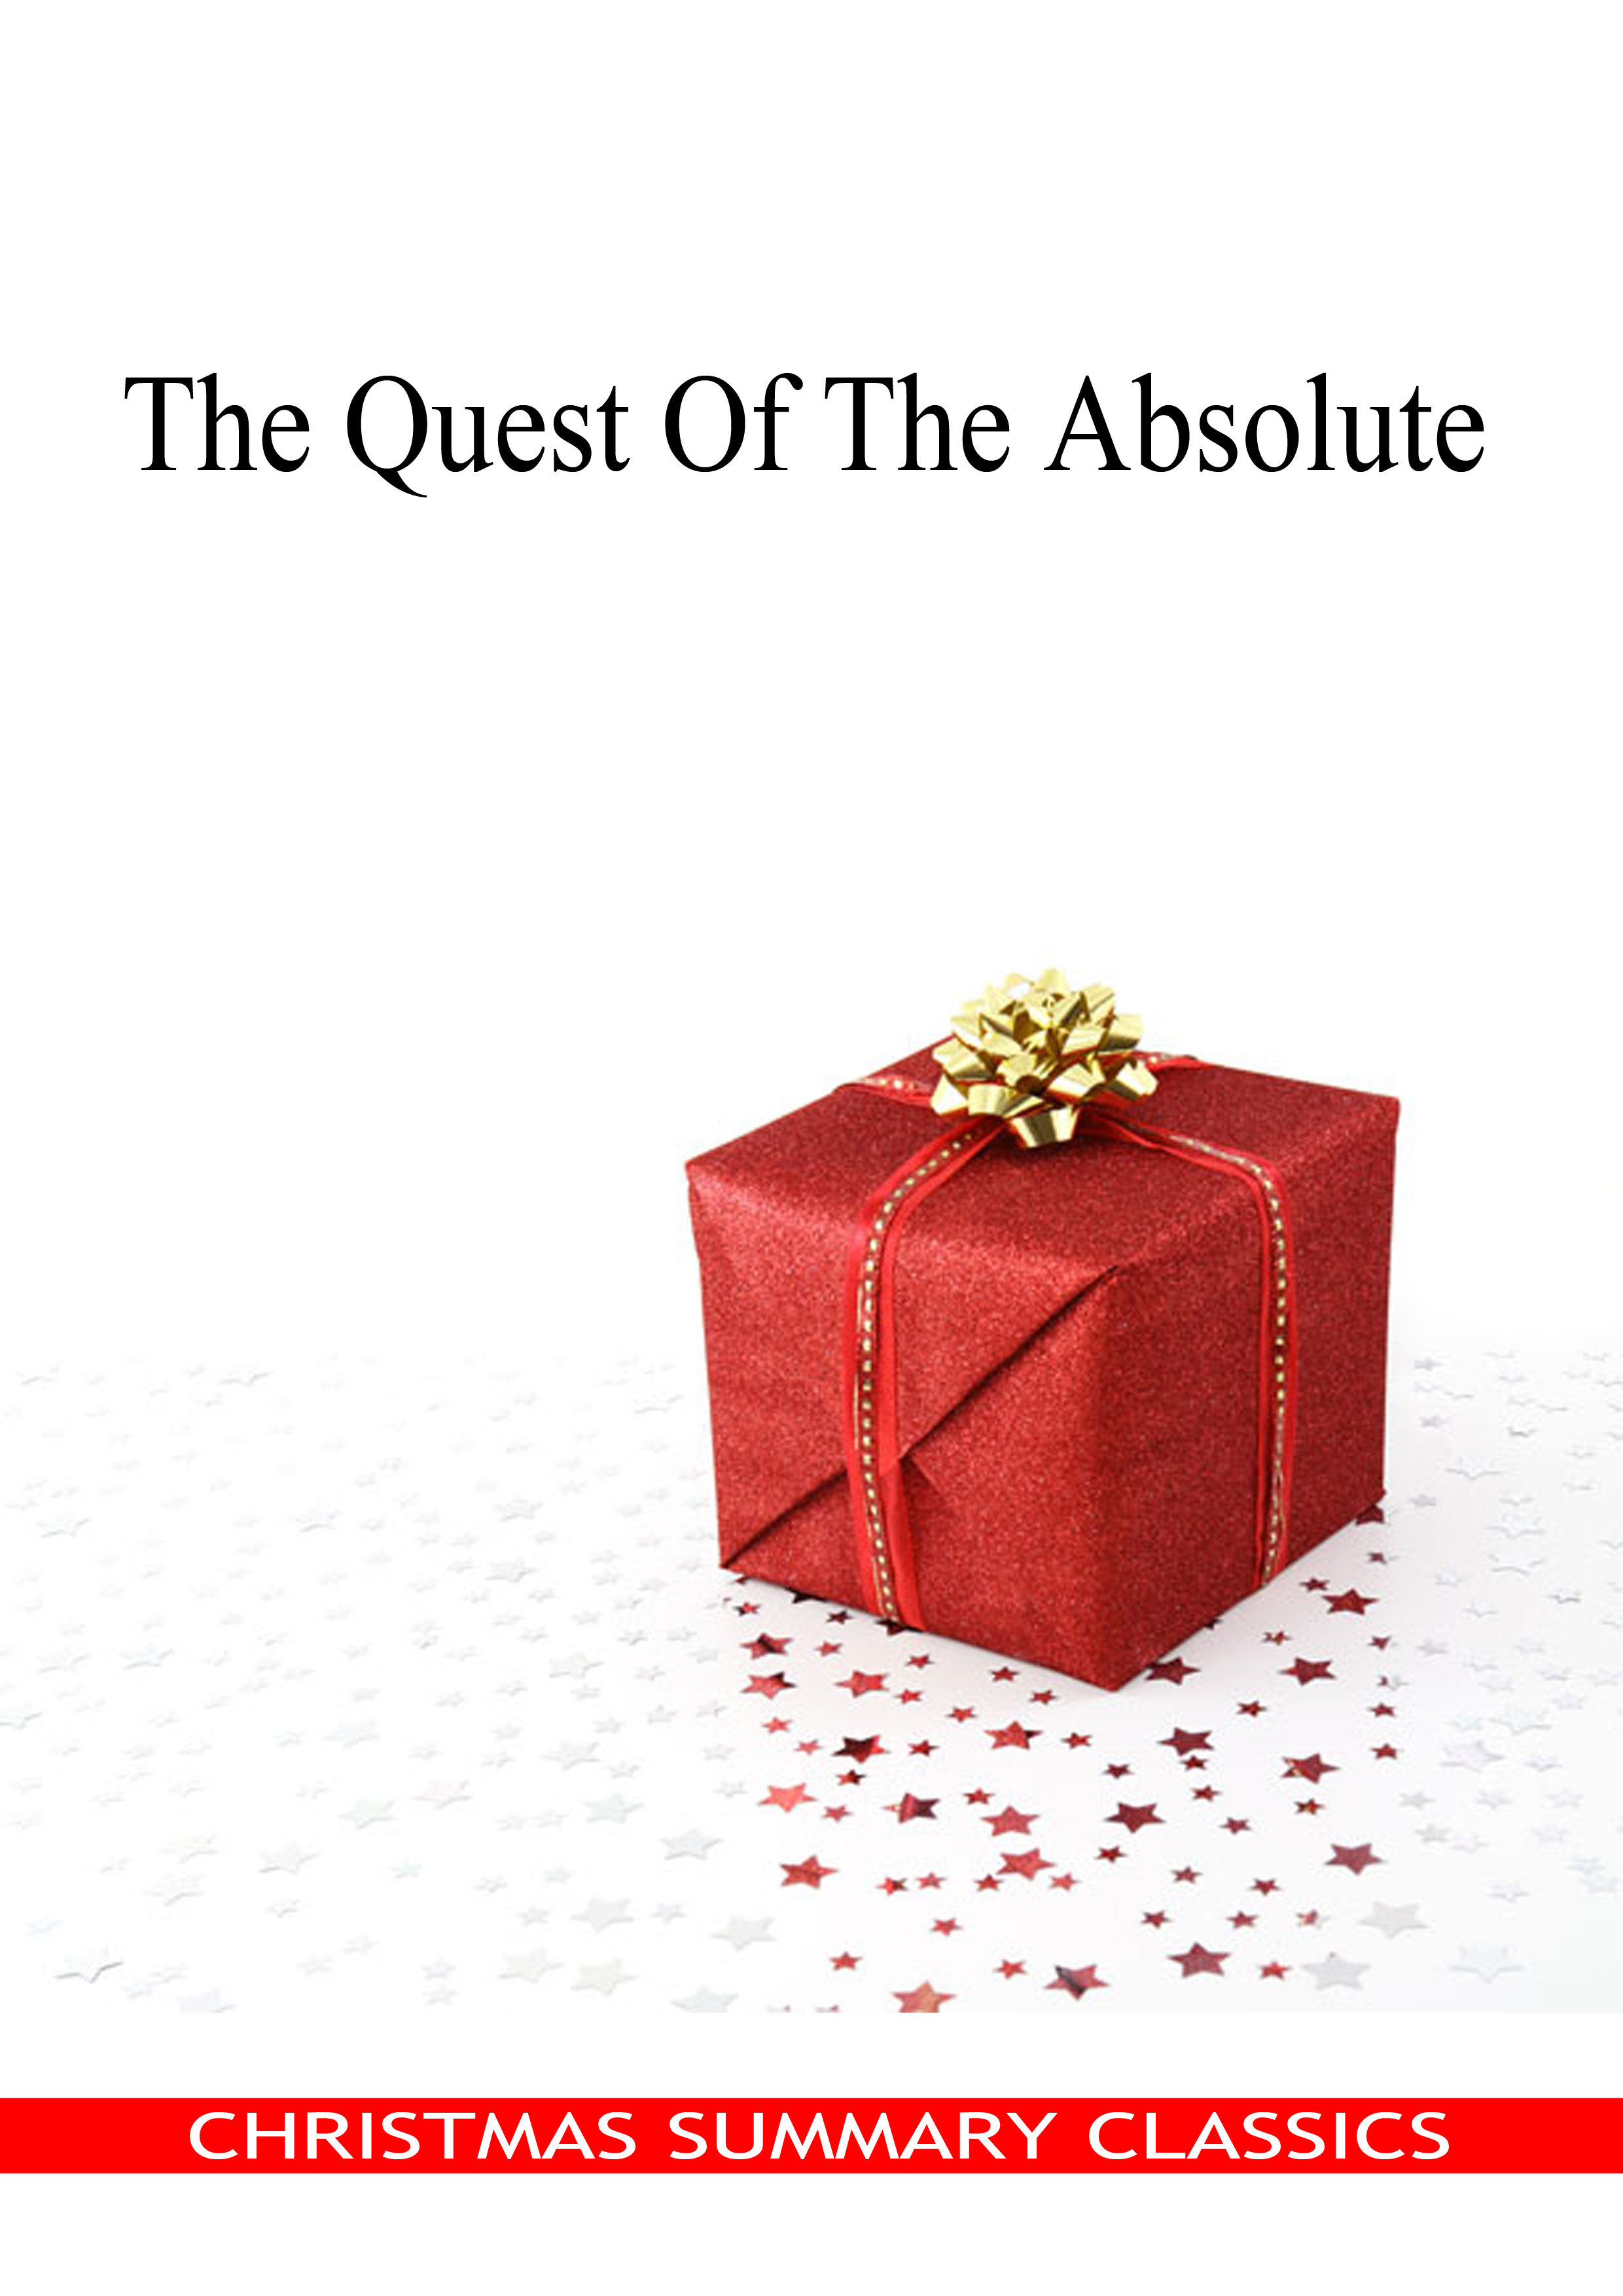 Honore de Balzac - The Quest Of The Absolute [Christmas Summary Classics]